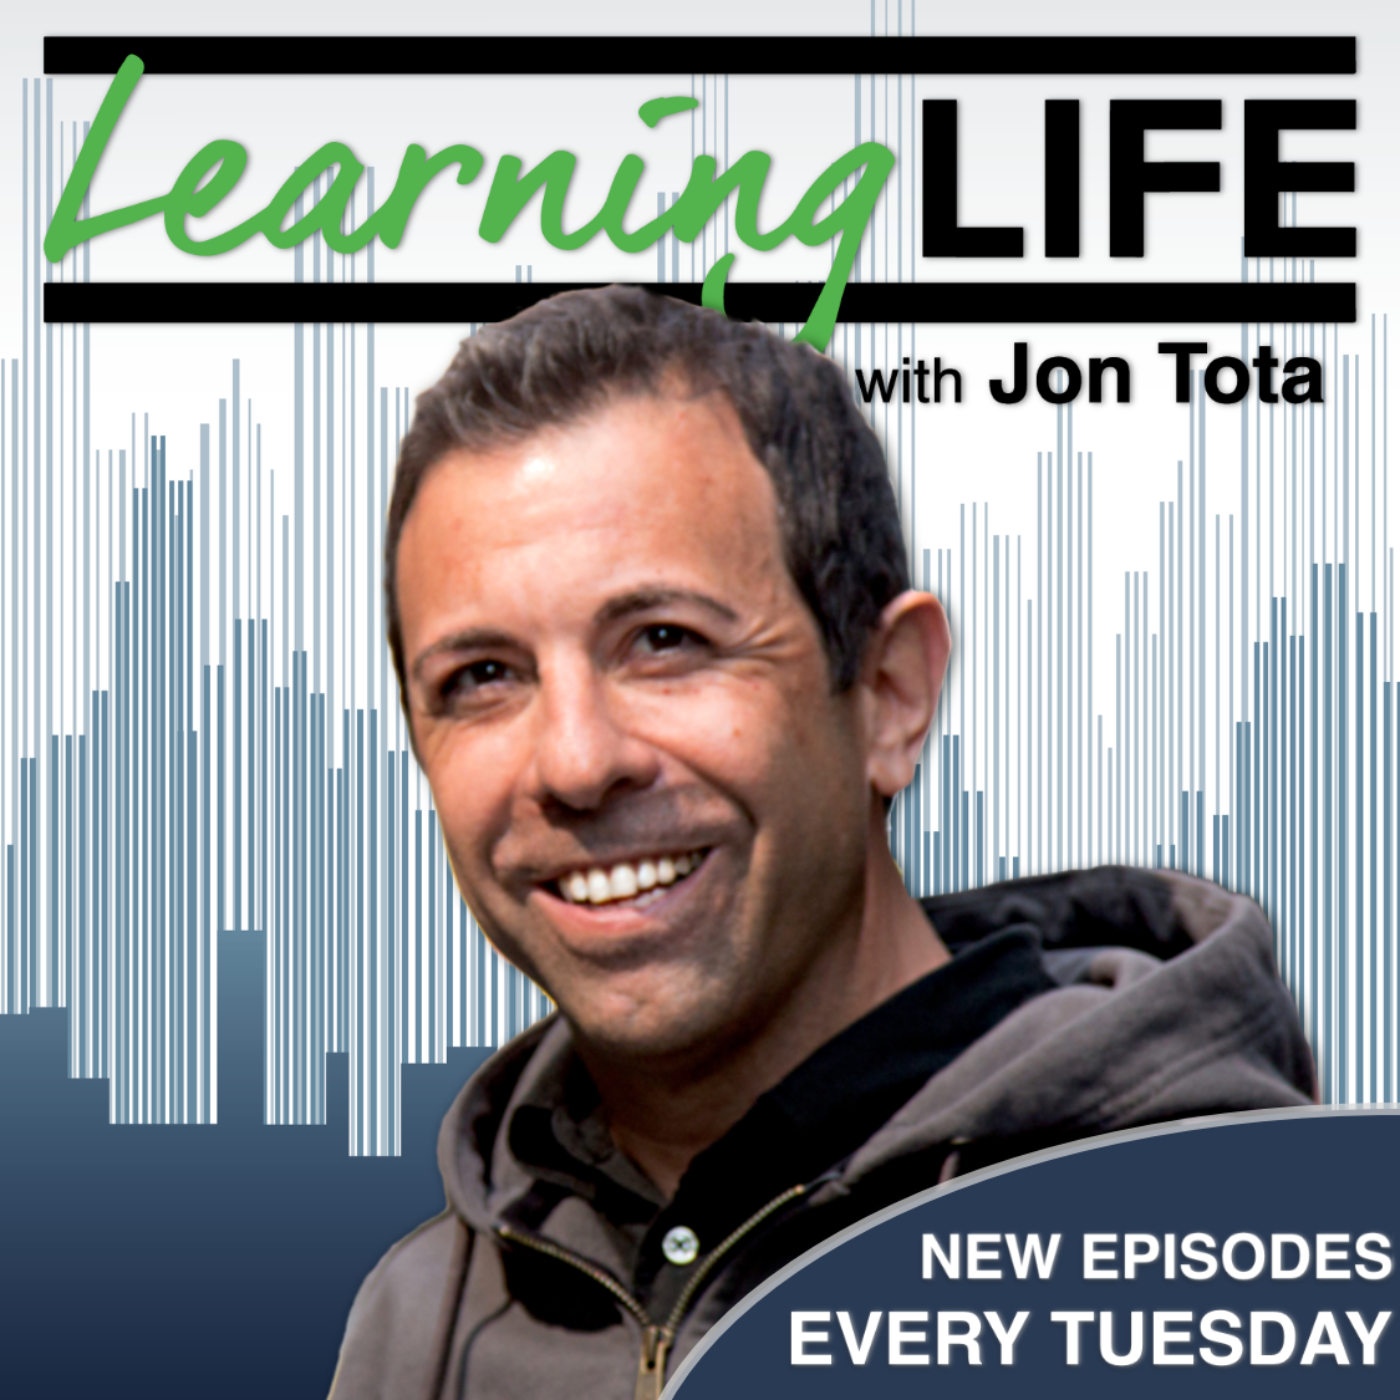 Learning Life with Jon Tota Podcast